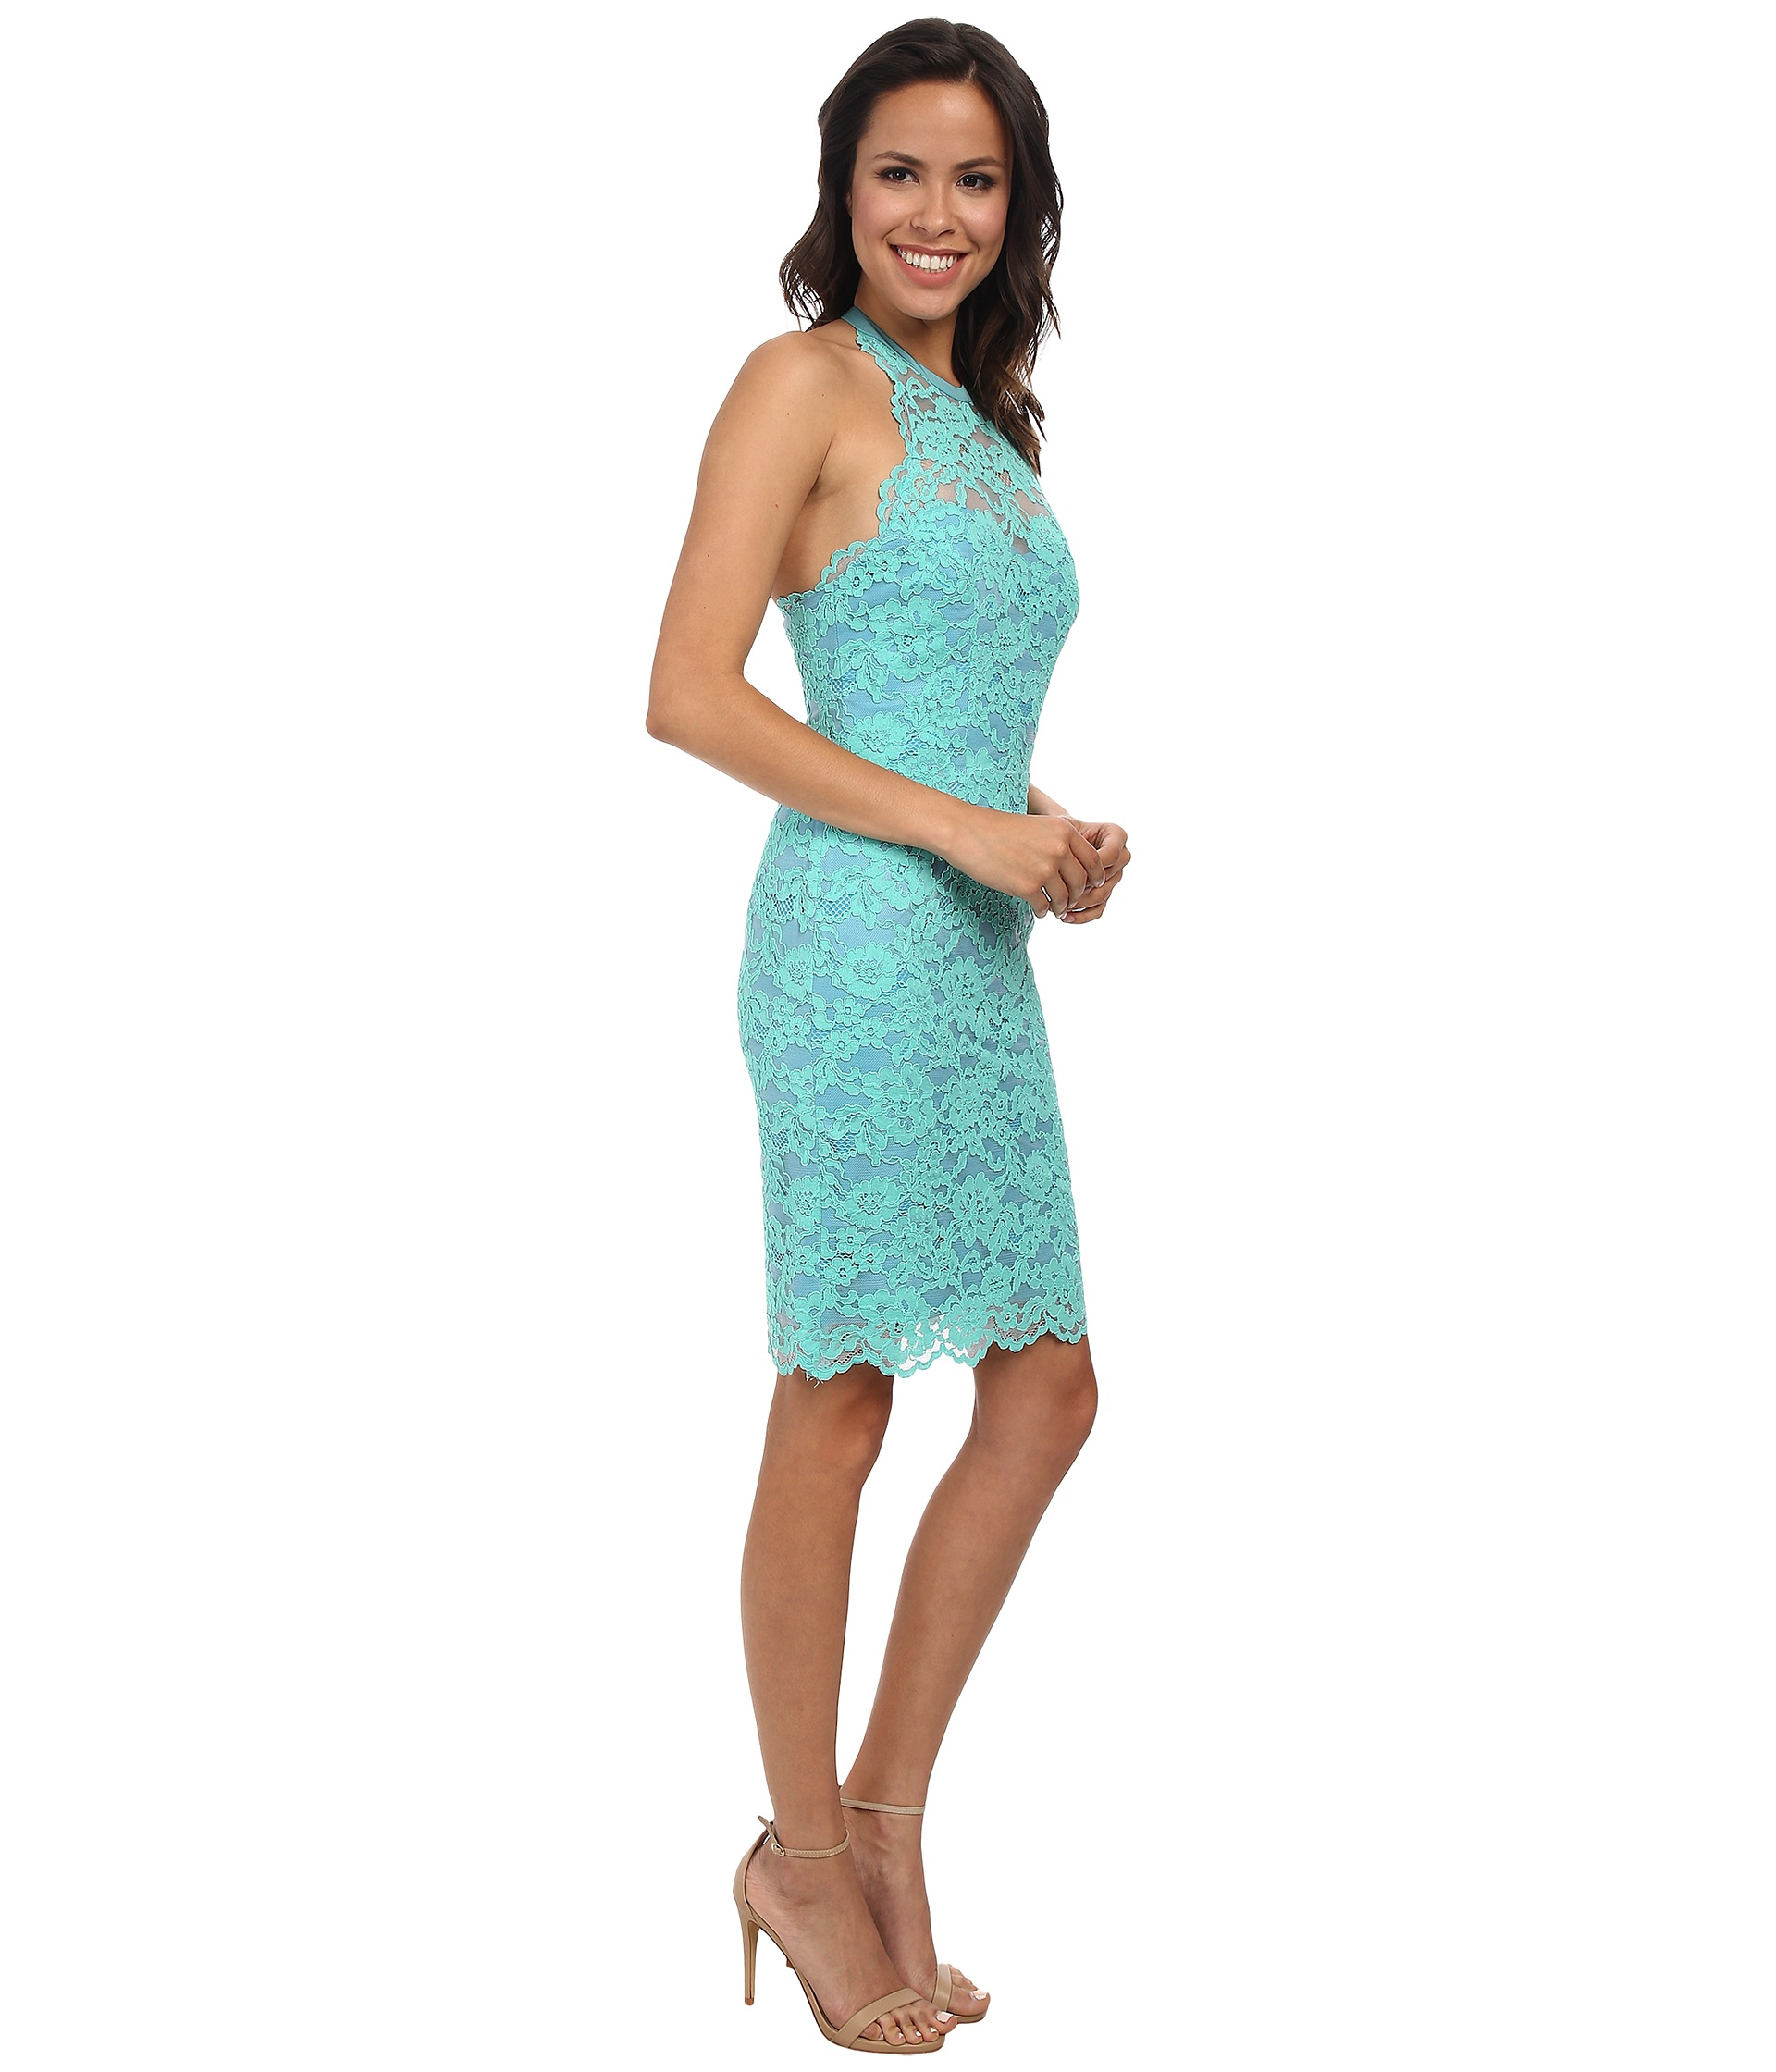 Lyst - Nicole Miller Cordelia Lace Party Dress in Blue